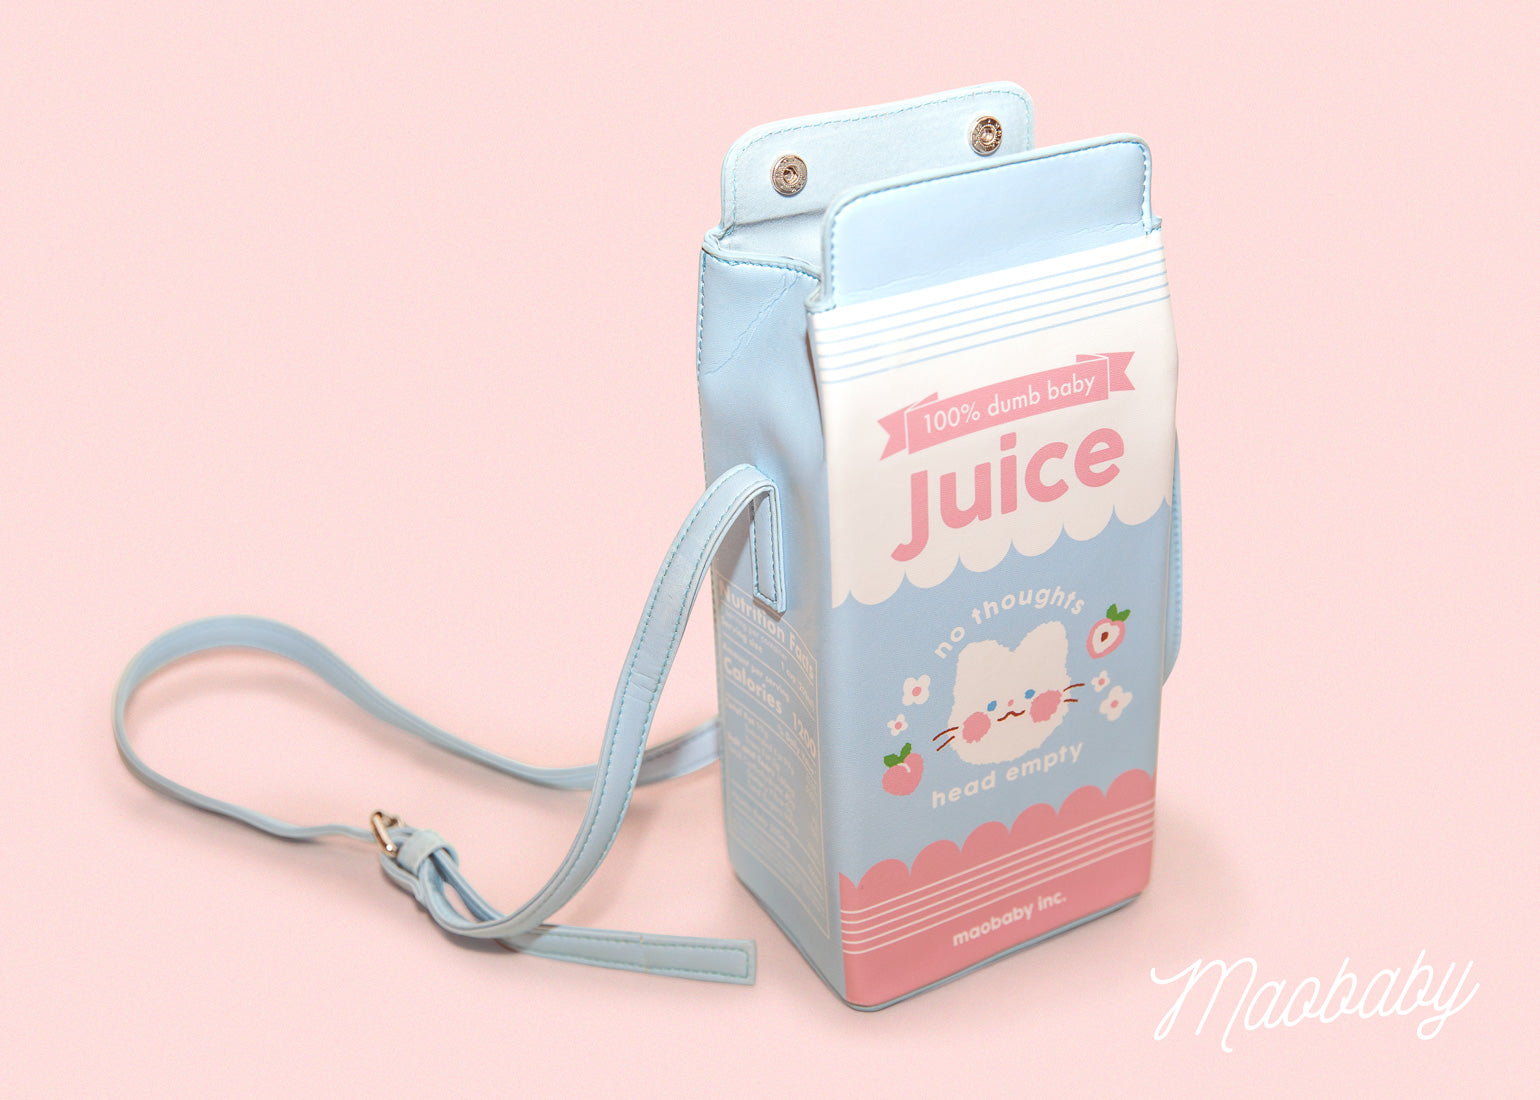 B GRADE (Read before buying) - Juicebox Crossbody Purse